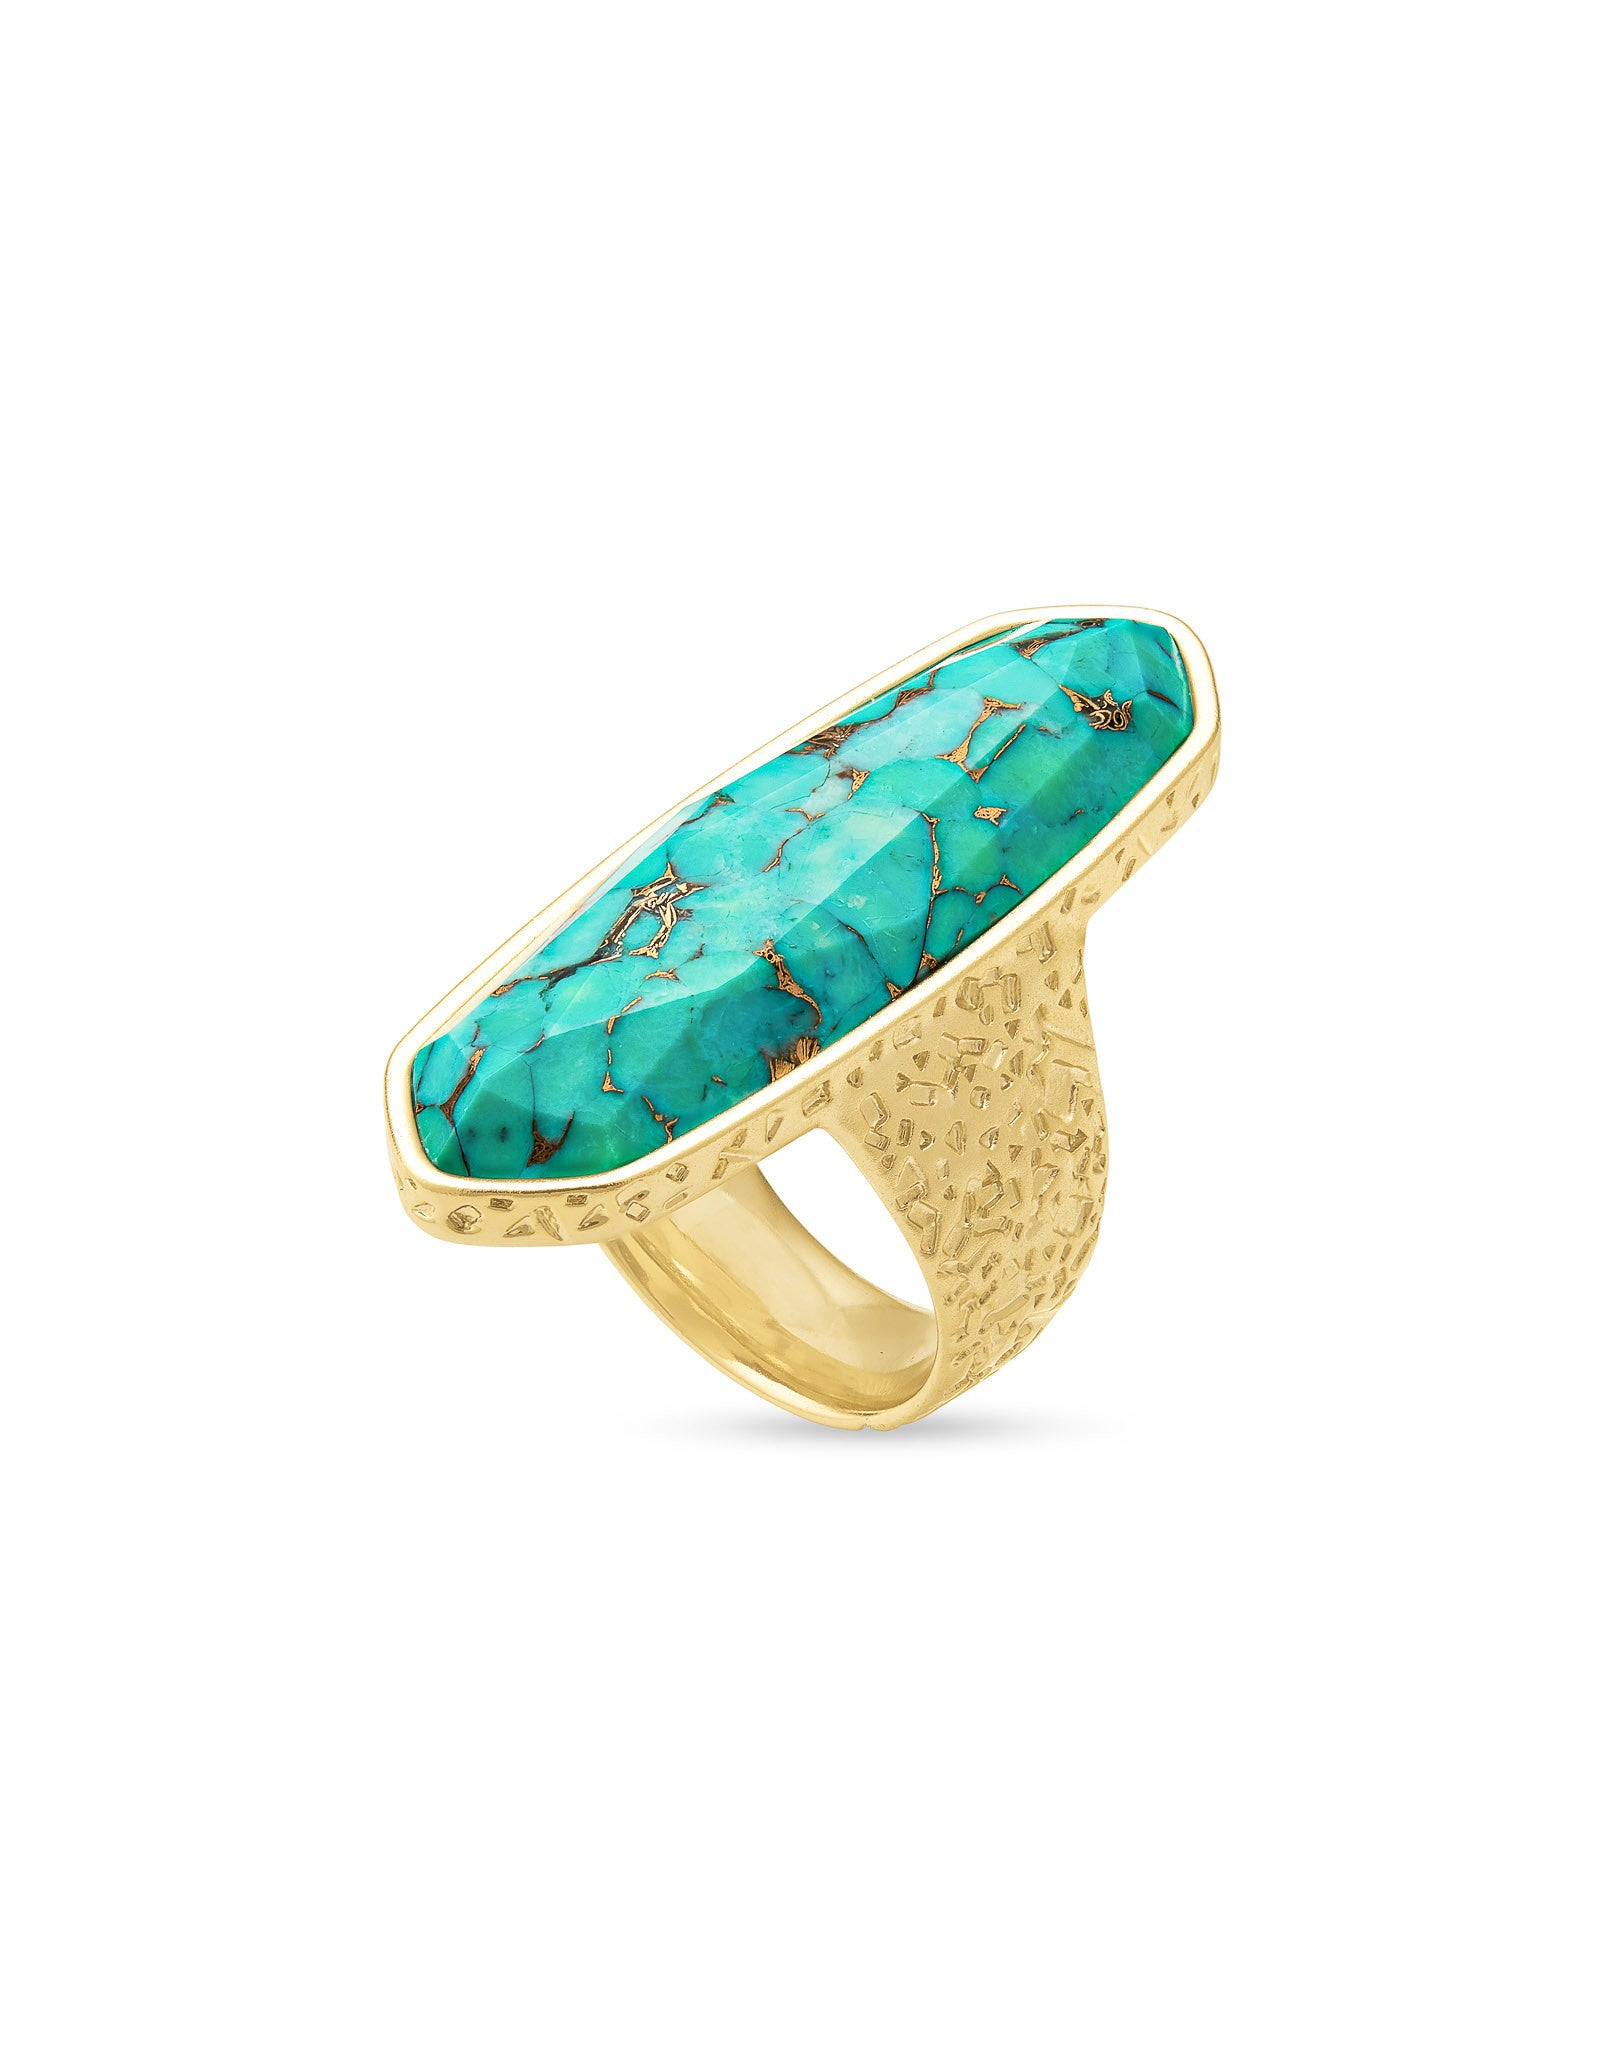 Kendra Scott Layla Ring in Gold Bronze Veined Teal